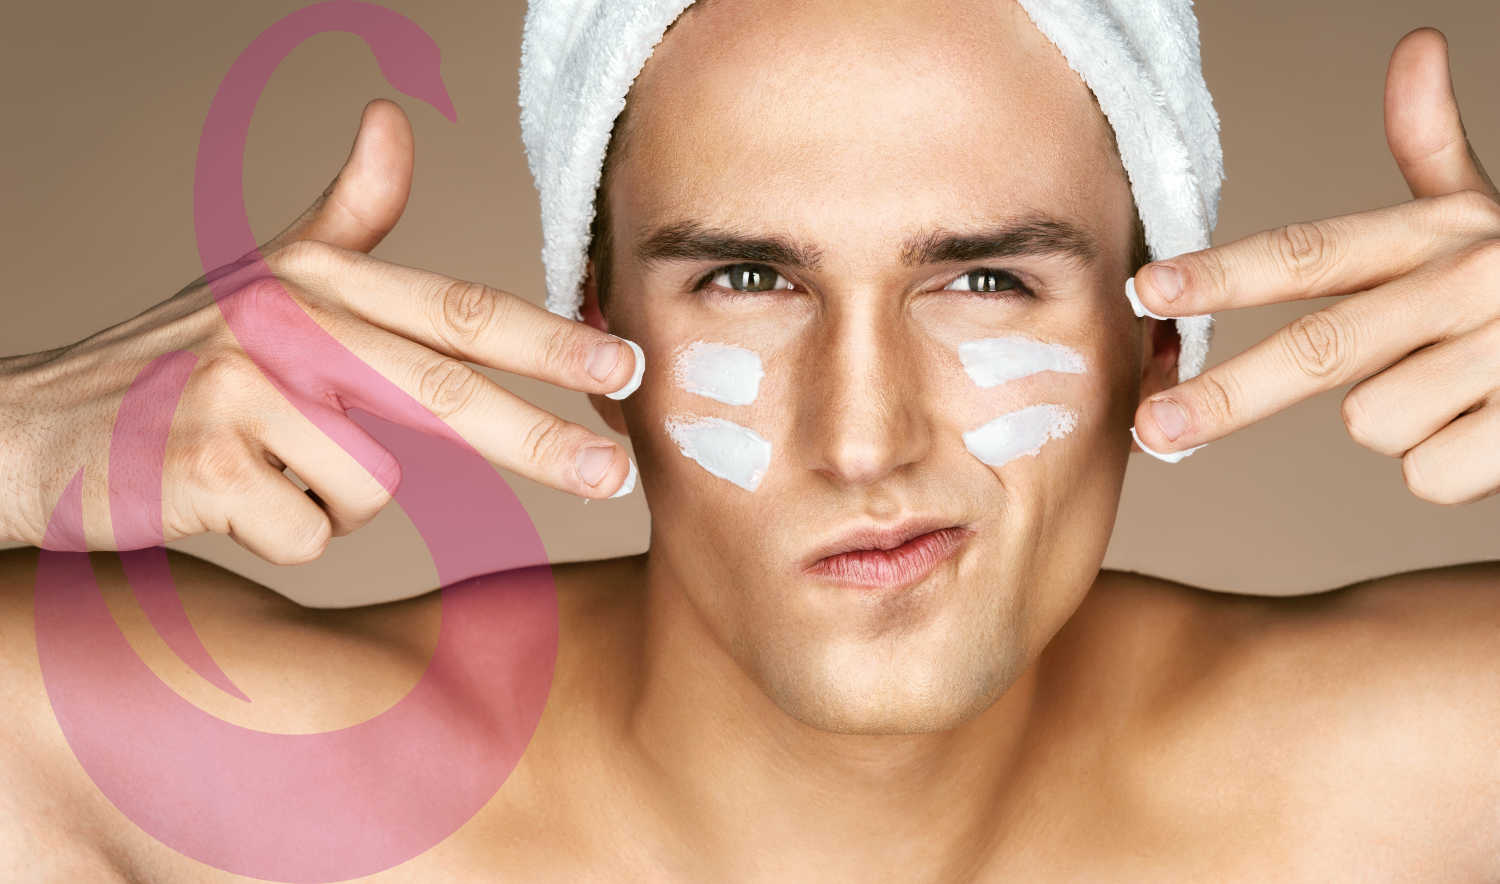 dermal filler treatments for men